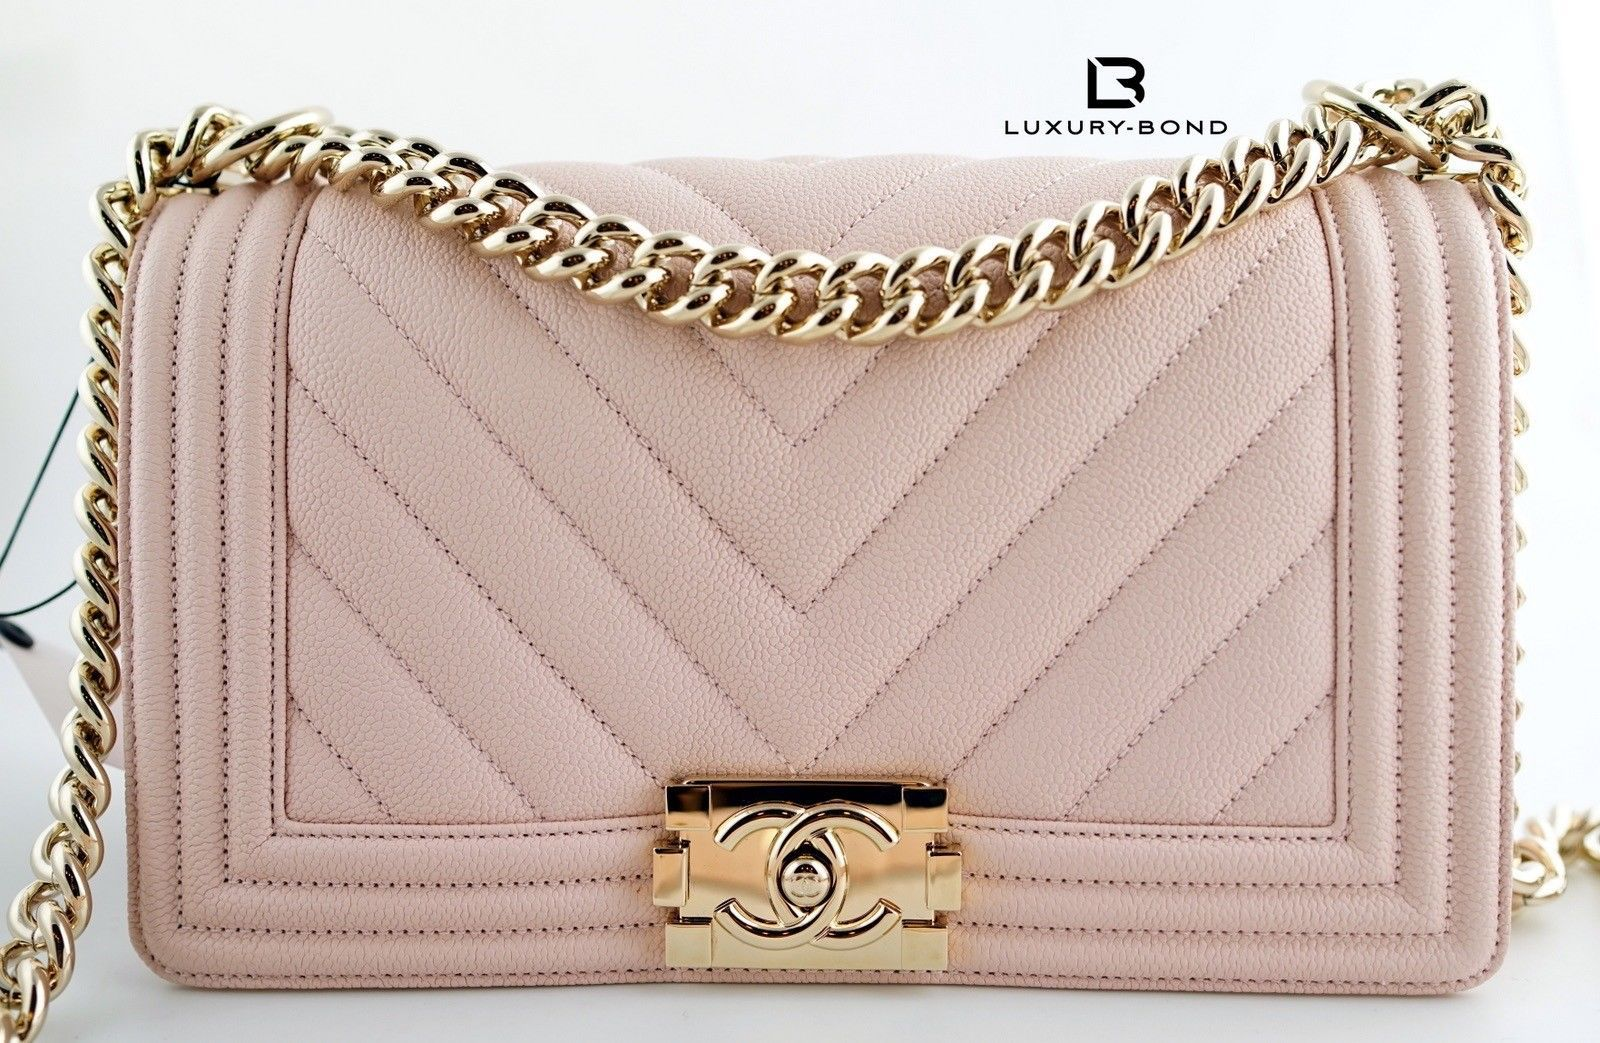 f8167ea6c46d NWT CHANEL Le Boy CHEVRON Old Medium CAVIAR Flap Bag Nude Beige Gold hrdwr  17K